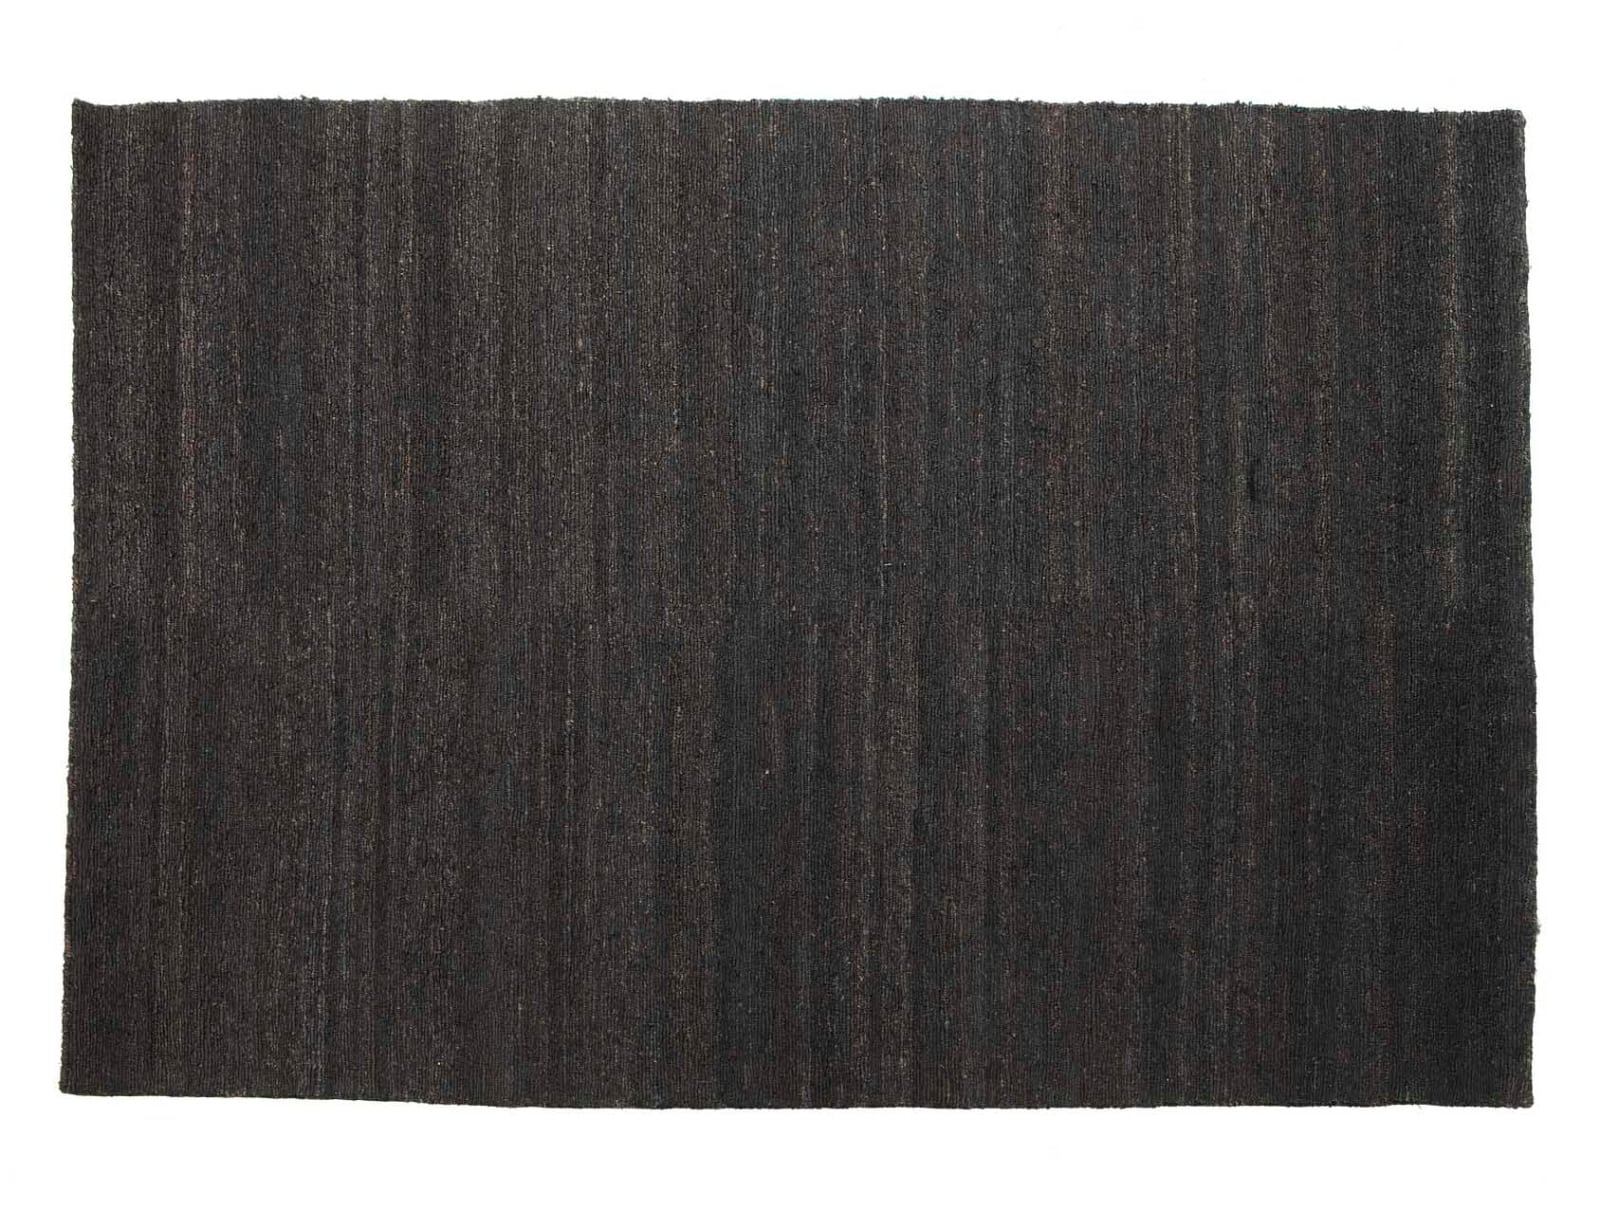 Earth Rug Black, 170 x 240 cm